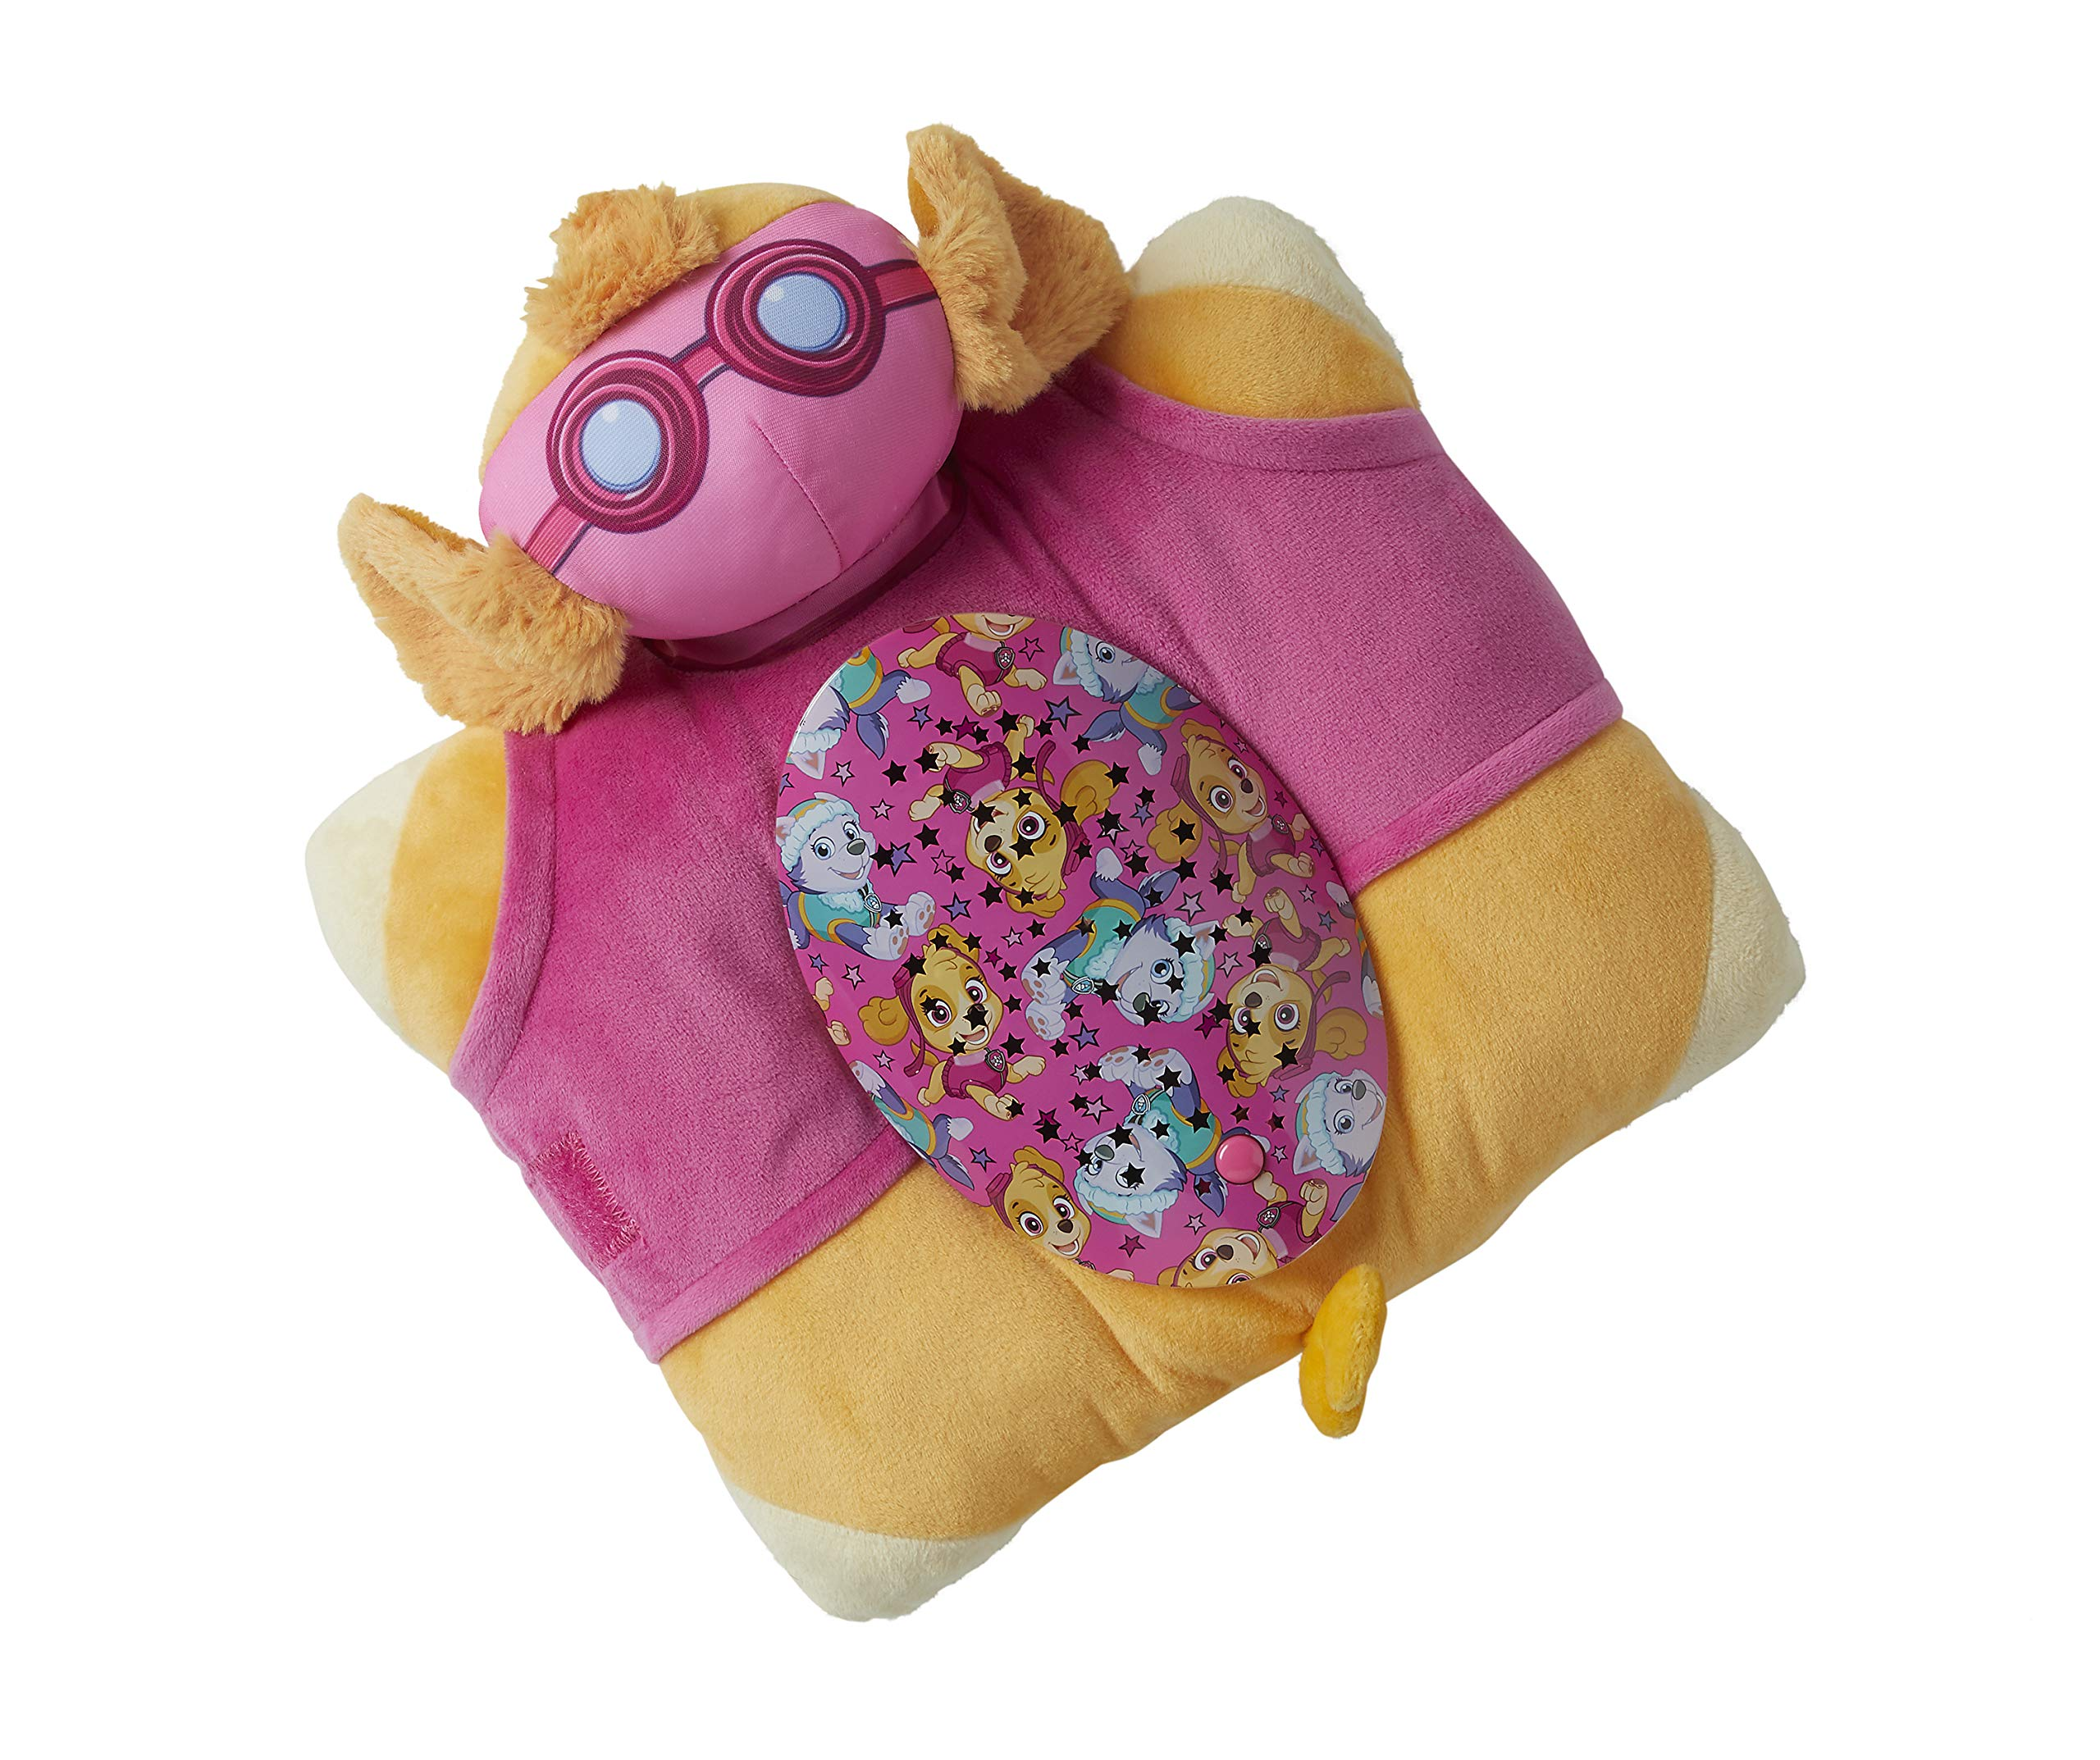 Pillow Pets Sleep Time Lite - Skye - Nickelodeon Paw Patrol by Pillow Pets (Image #4)